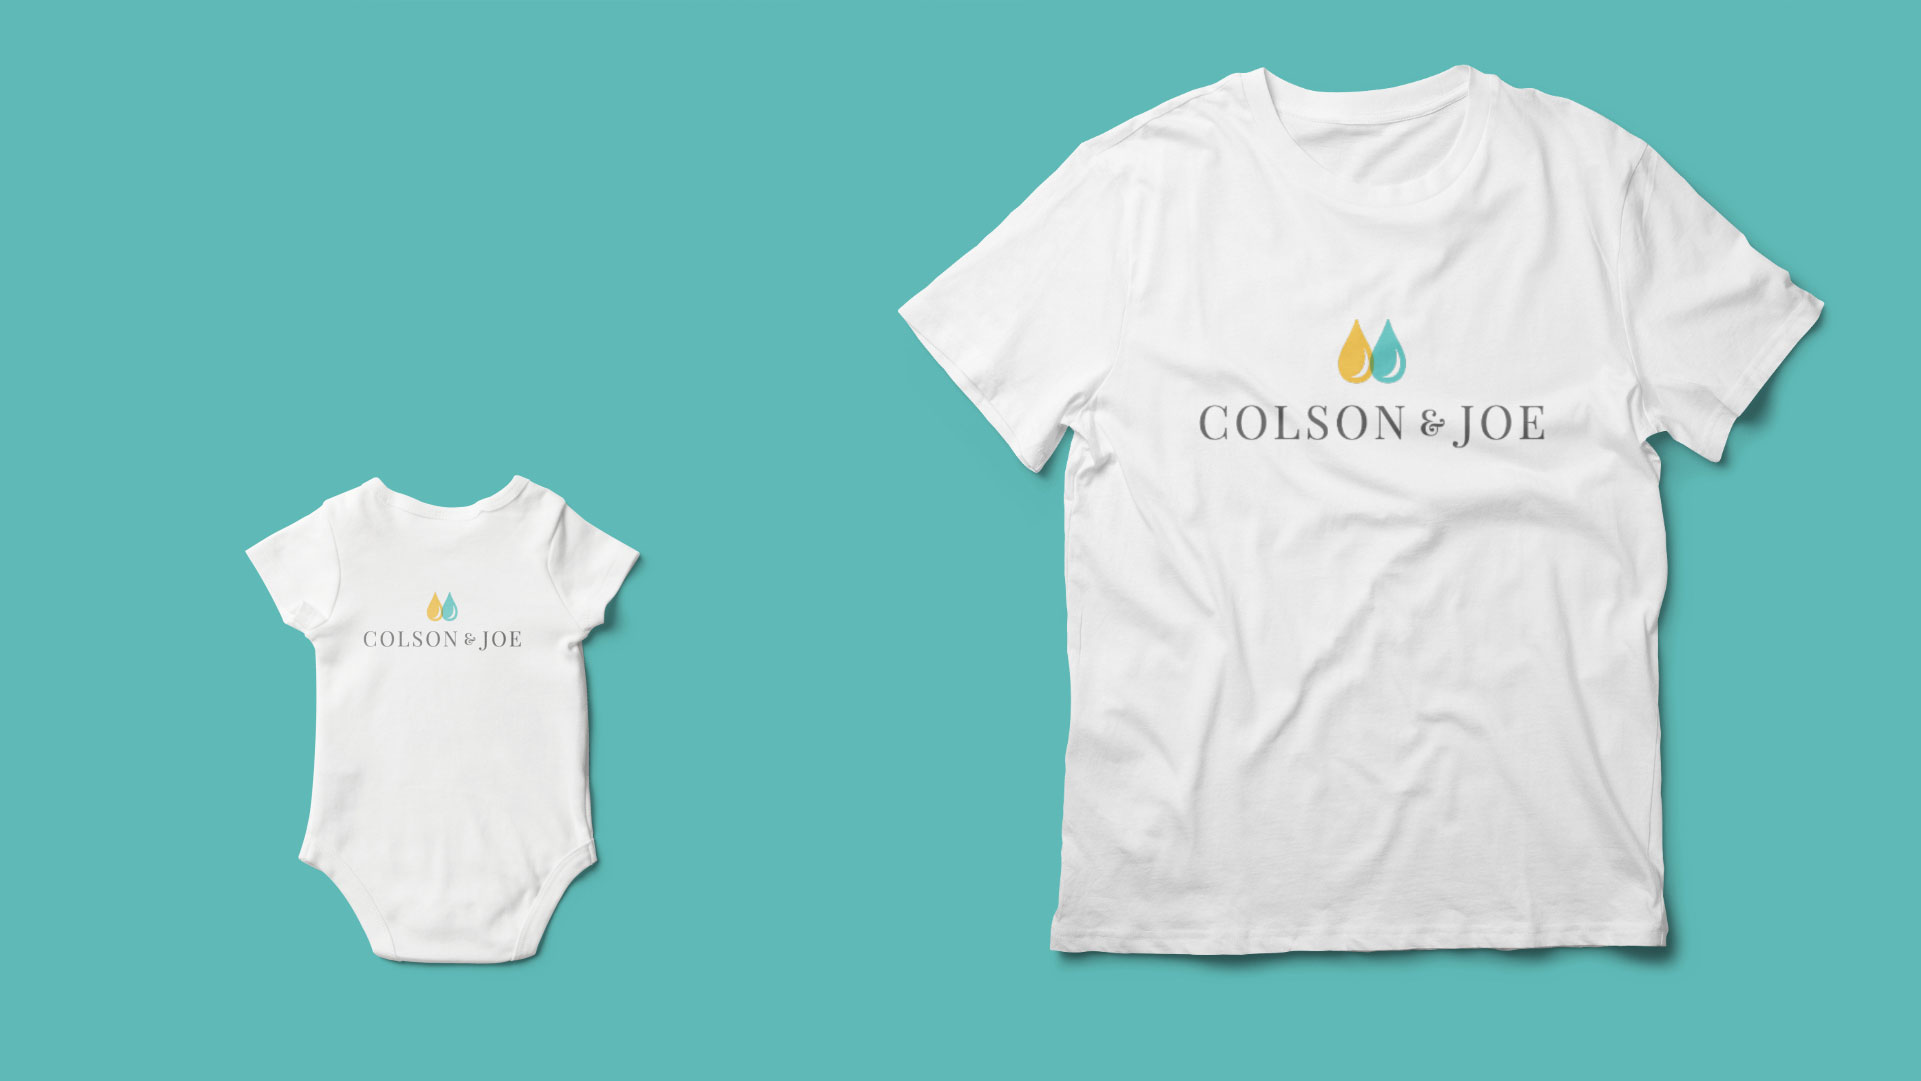 Colson & Joe t-shirts